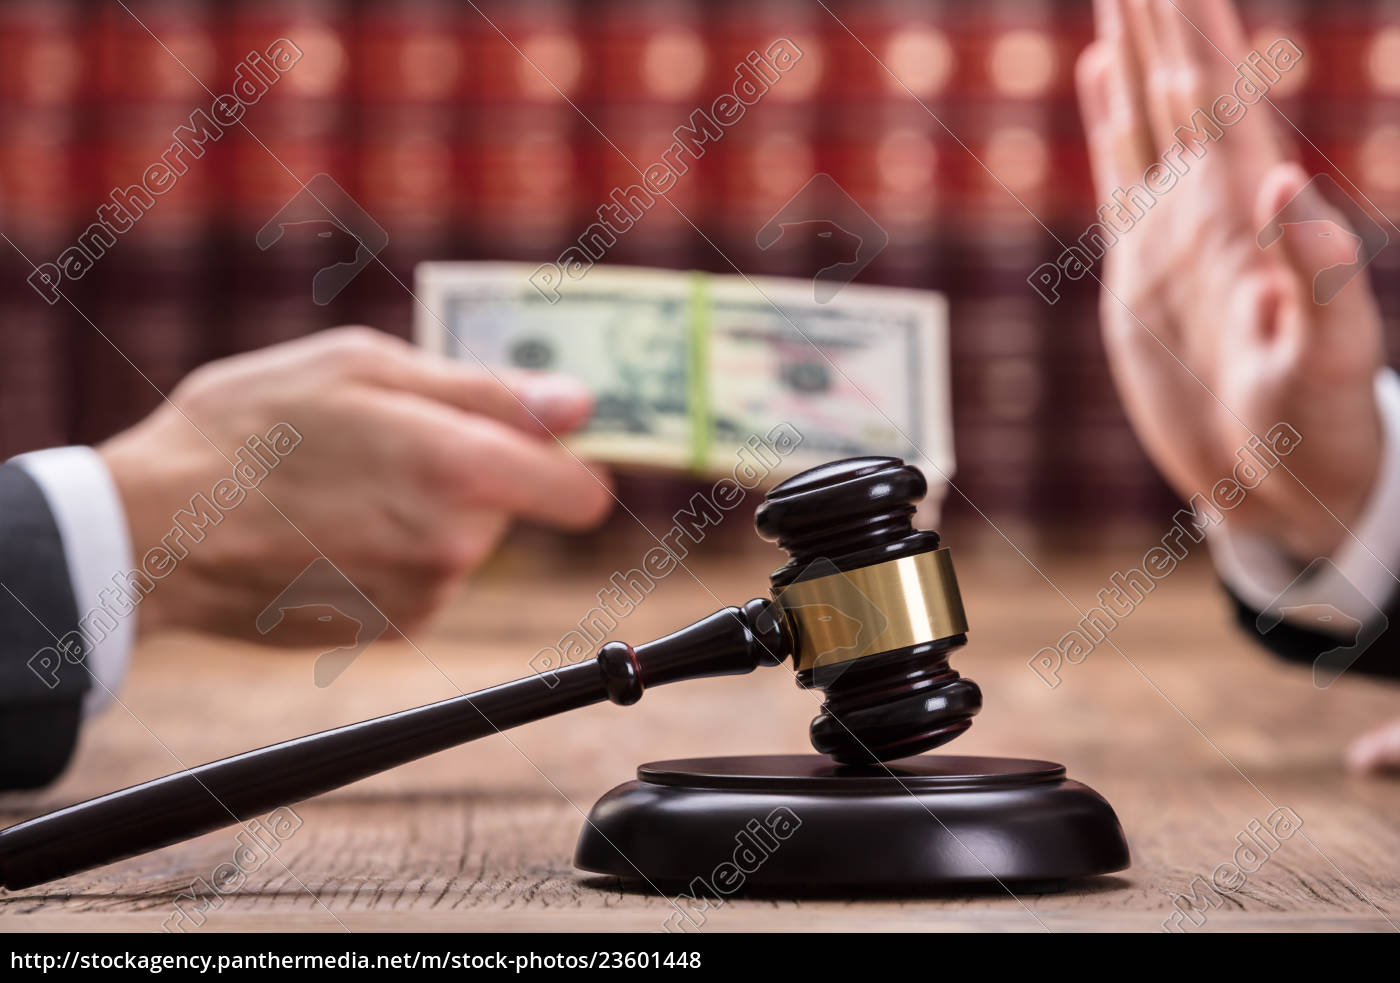 close-up, of, a, gavel, in, courtroom - 23601448